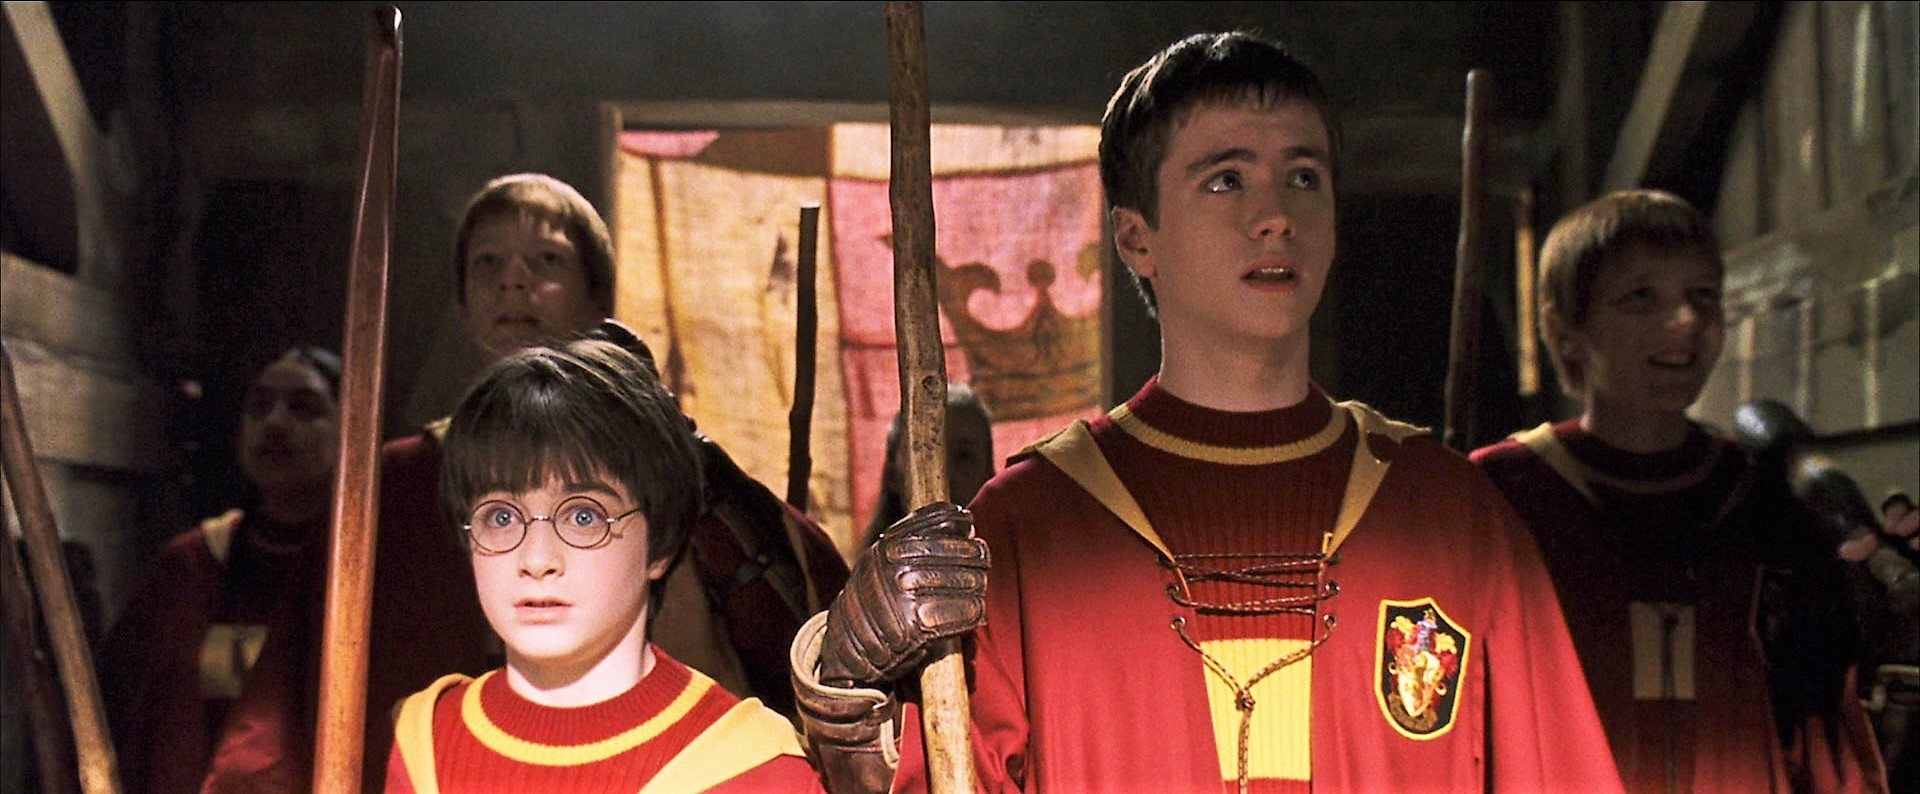 Gryffindor vs Slytherin Quidditch match (1991) | Harry Potter Wiki ...